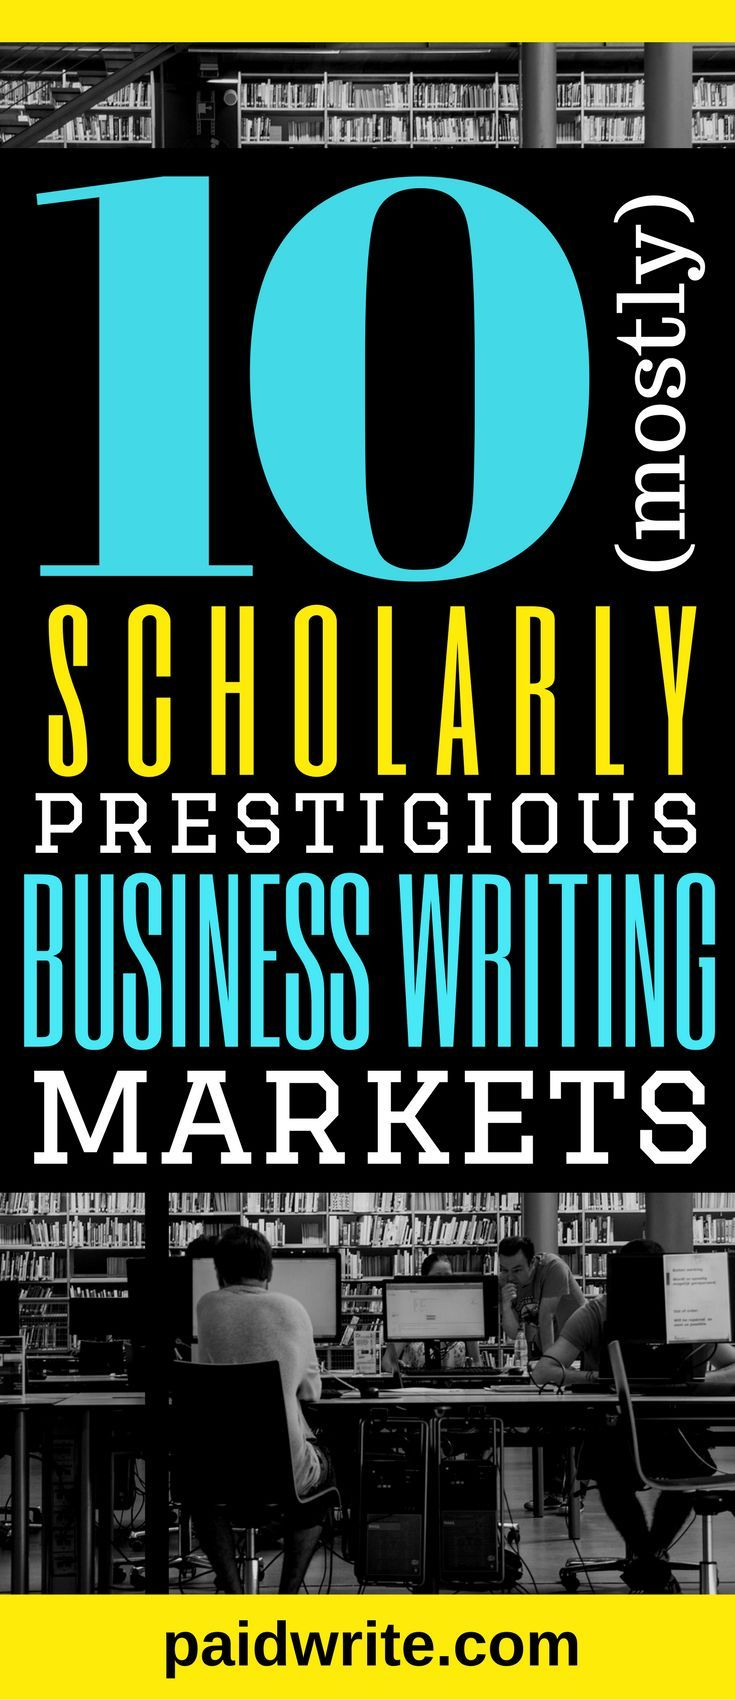 10 prestigious and mostly scholarly business writing markets